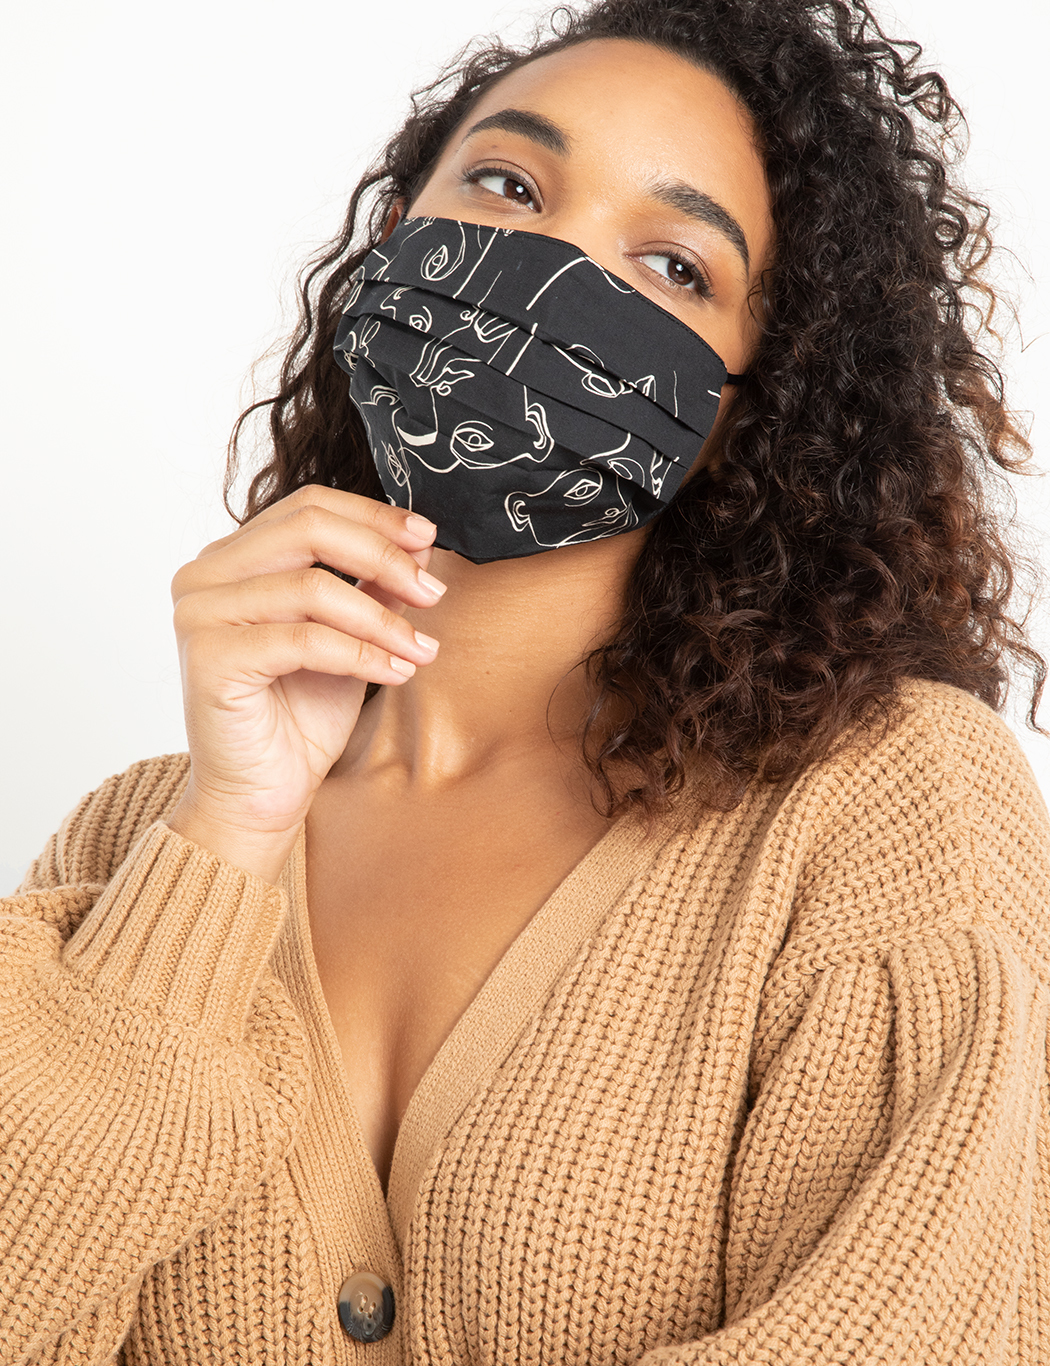 a woman with dark curly hair wearing a face printed face mask